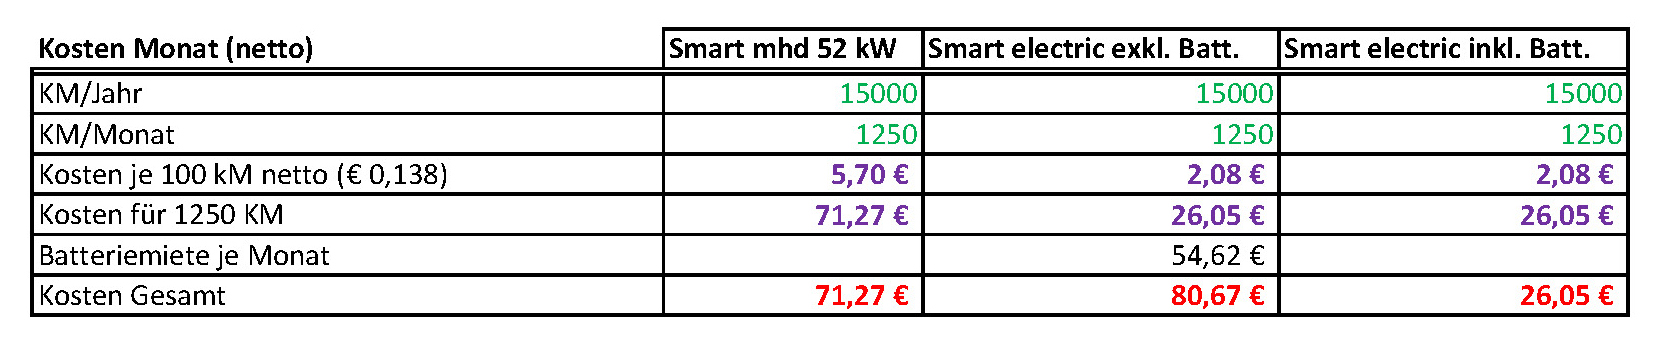 Smart_Electric_Drive_Kosten_Monat